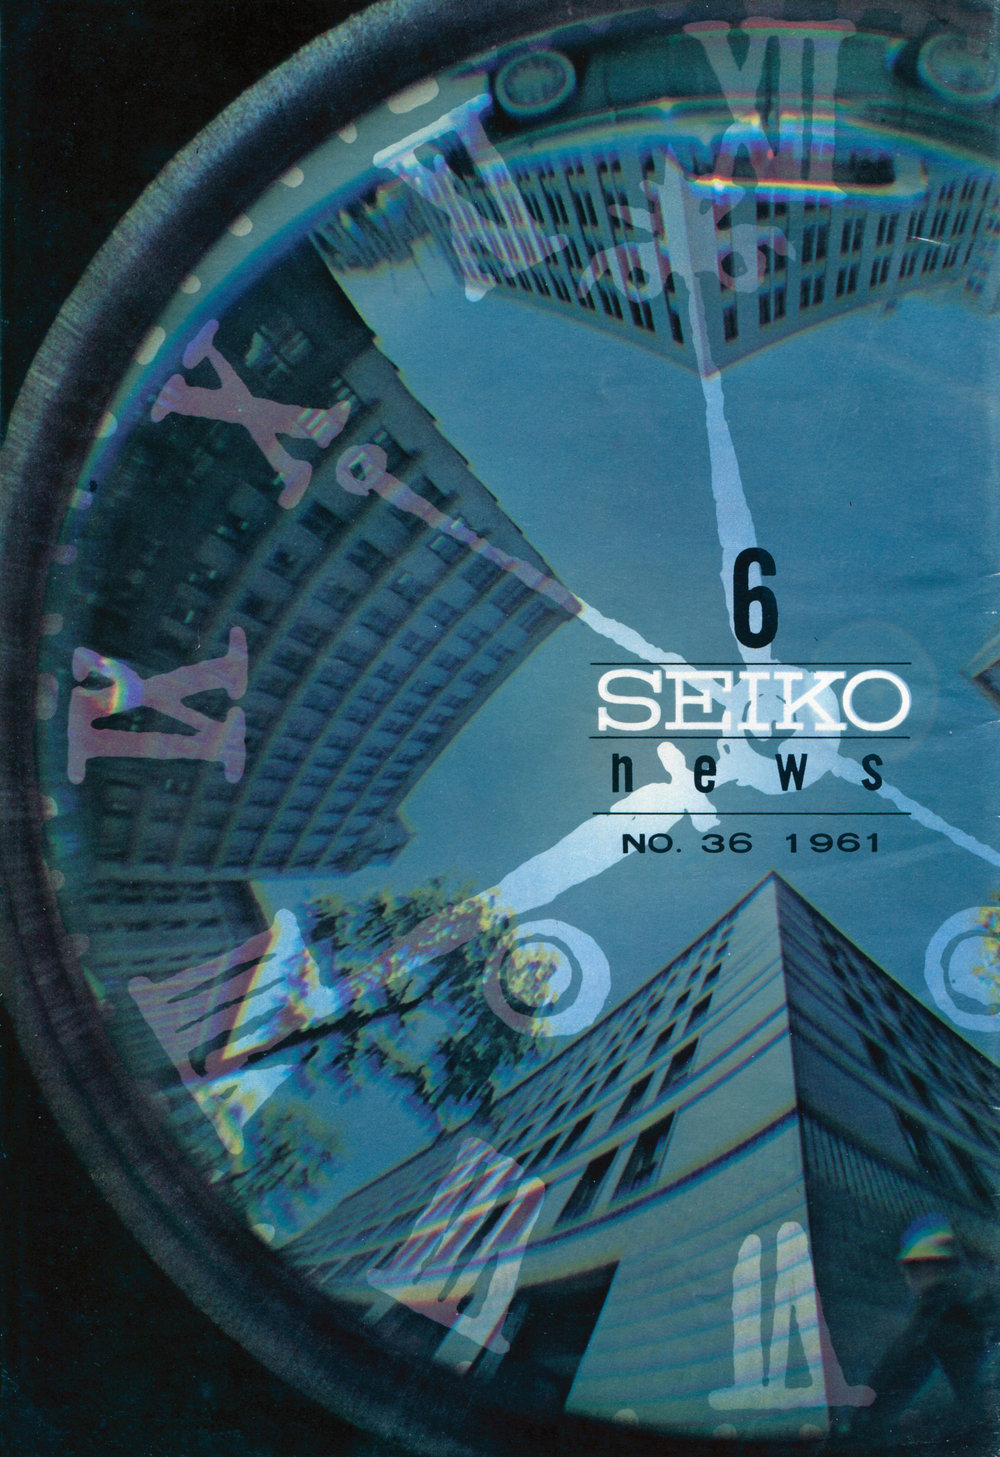 Seiko News No.36 1961.jpg